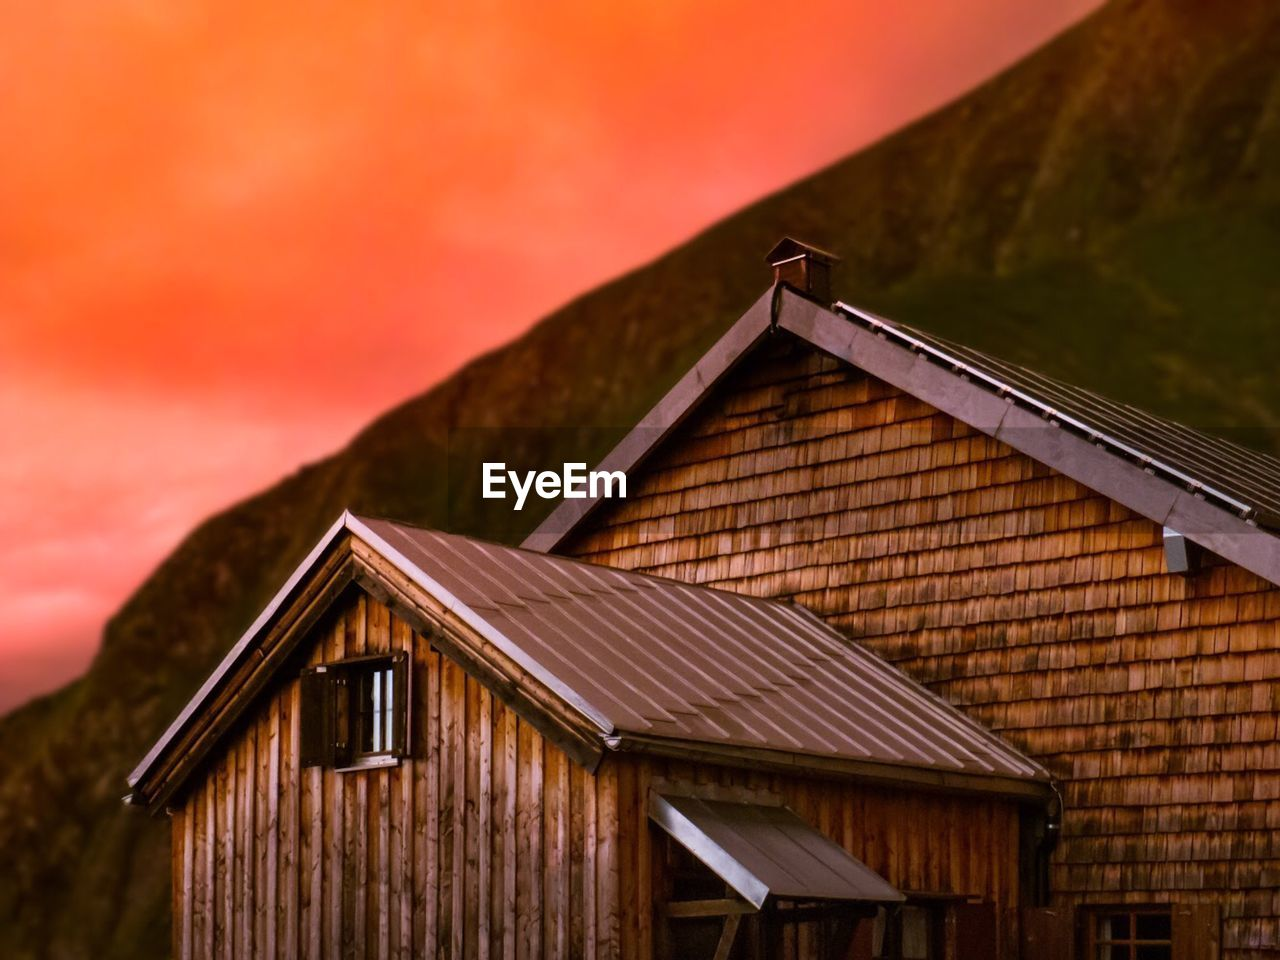 architecture, built structure, building exterior, building, house, sky, sunset, no people, wood - material, nature, roof, outdoors, orange color, mountain, day, focus on foreground, low angle view, beauty in nature, brown, residential district, cottage